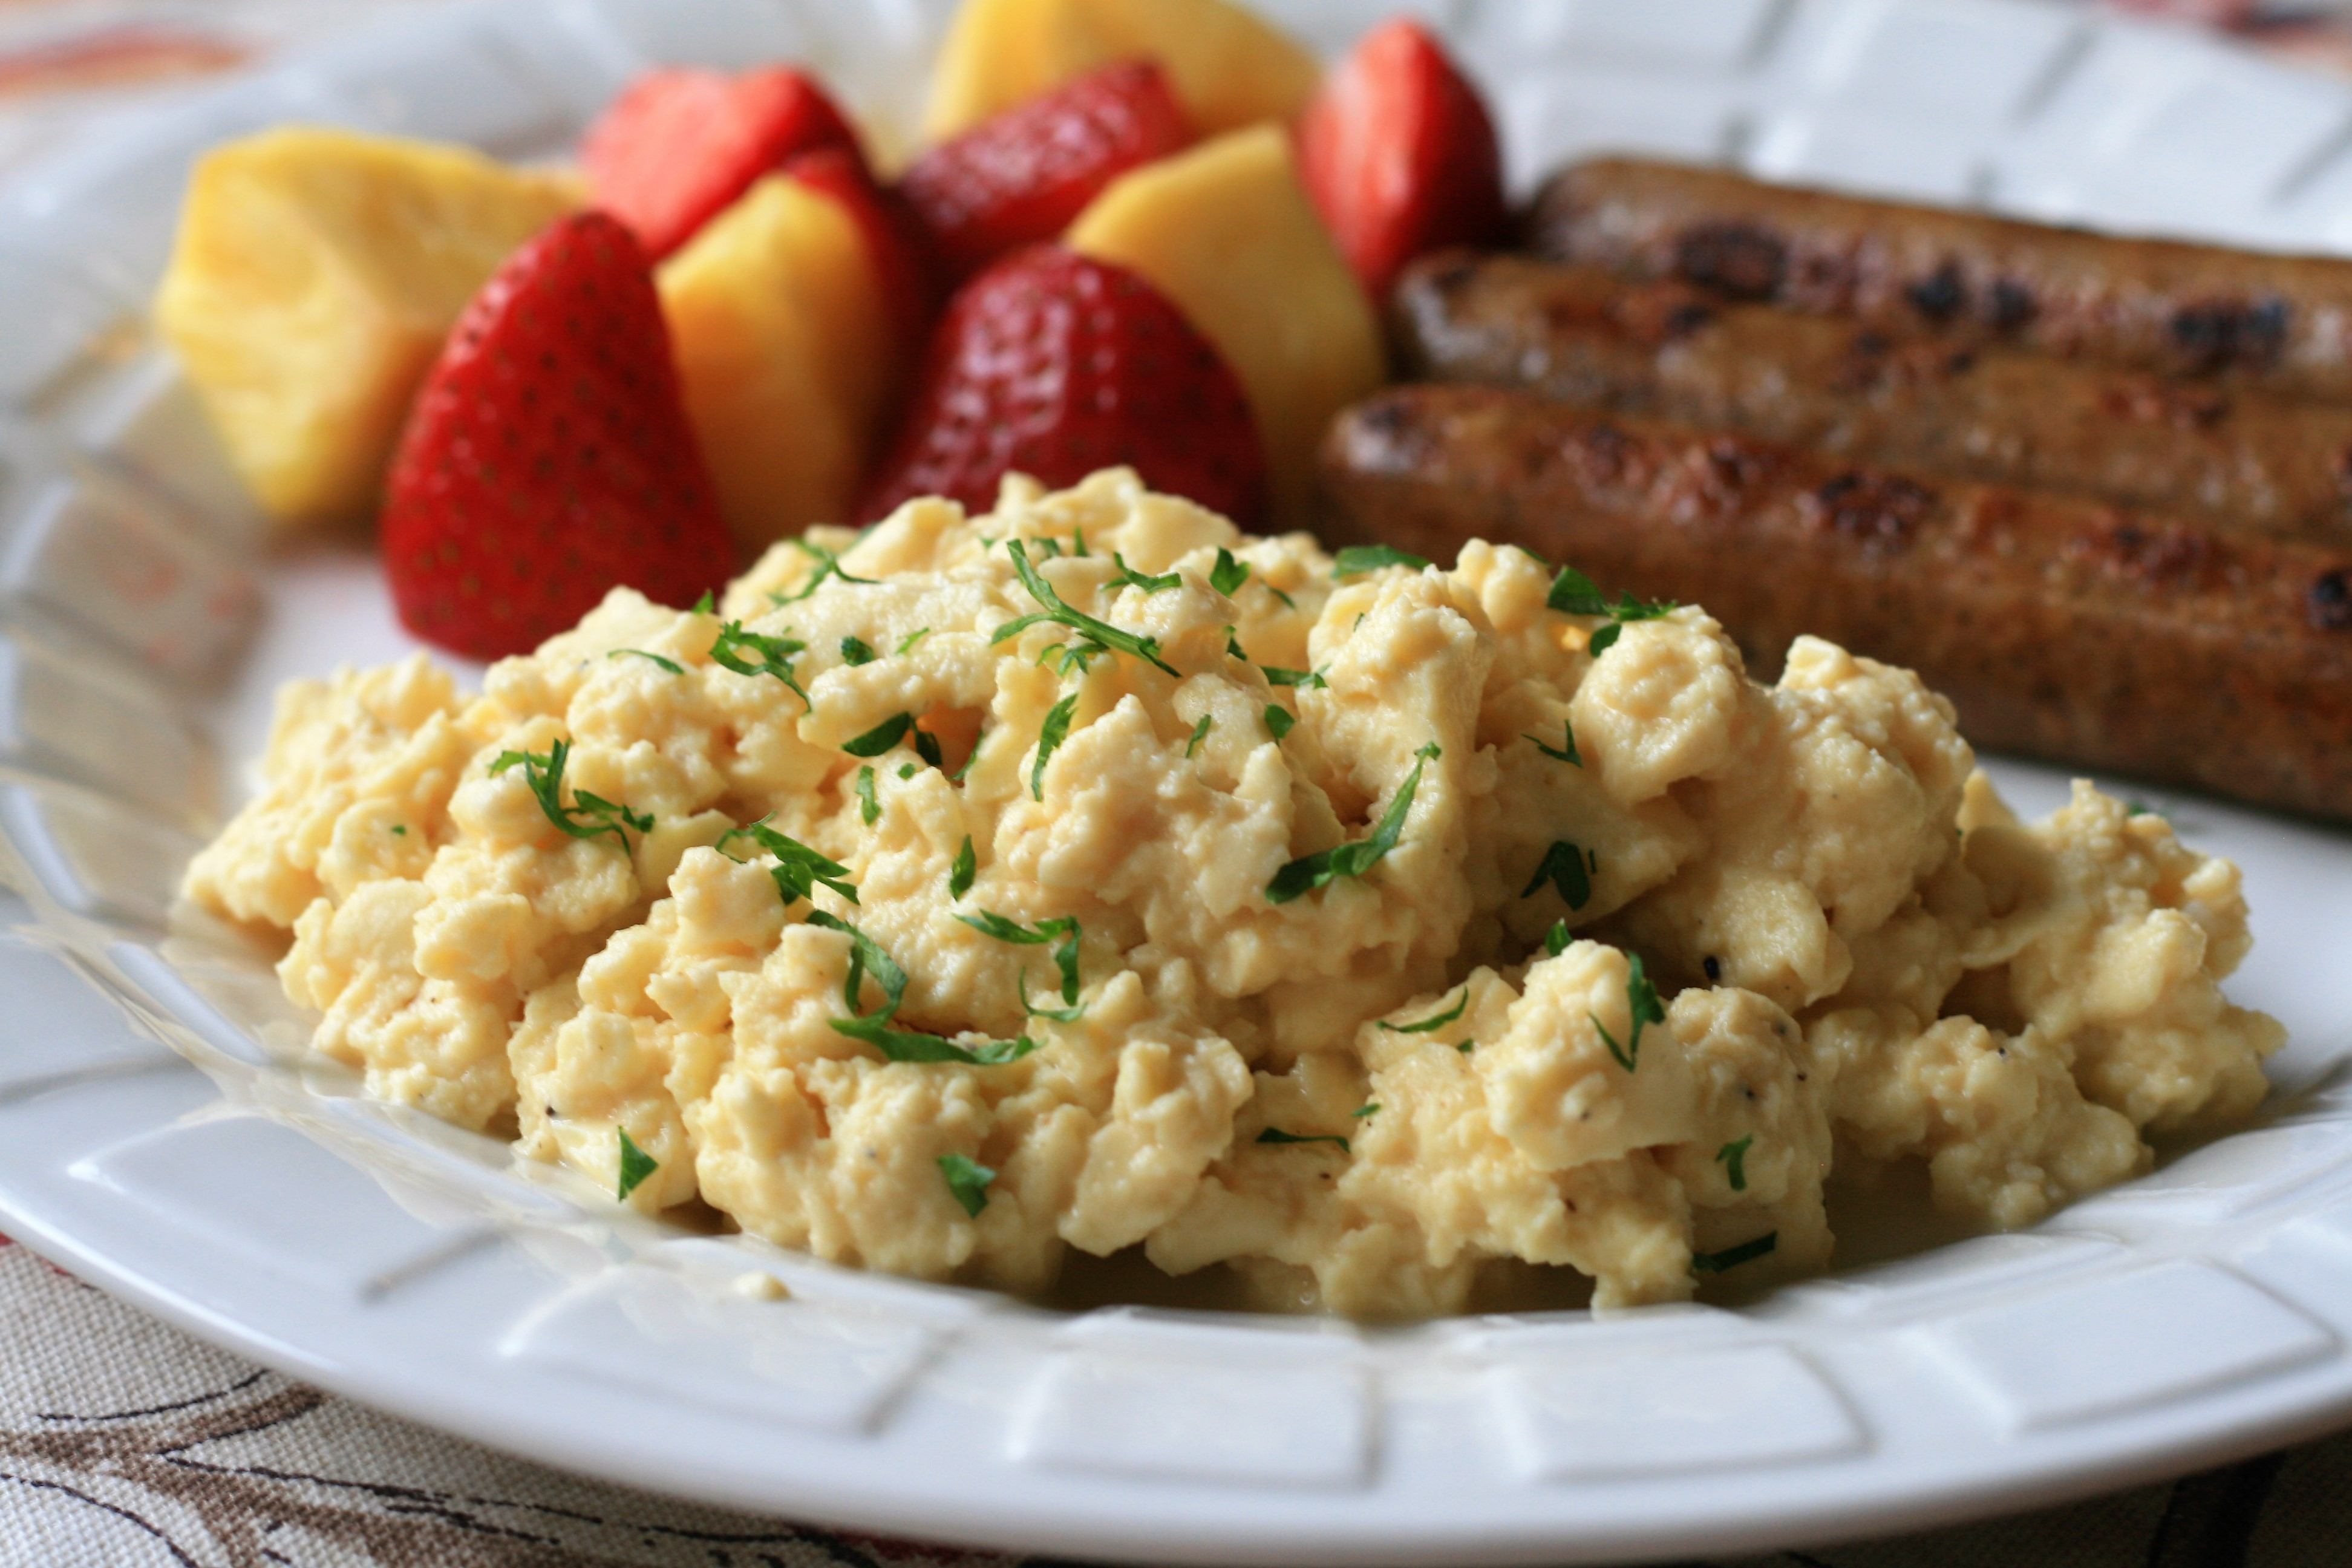 """Blend together eggs, milk, and cottage cheese and scramble slowly over low heat to keep the texture soft. """"Very soft, creamy, and tasty eggs!"""" says France C."""